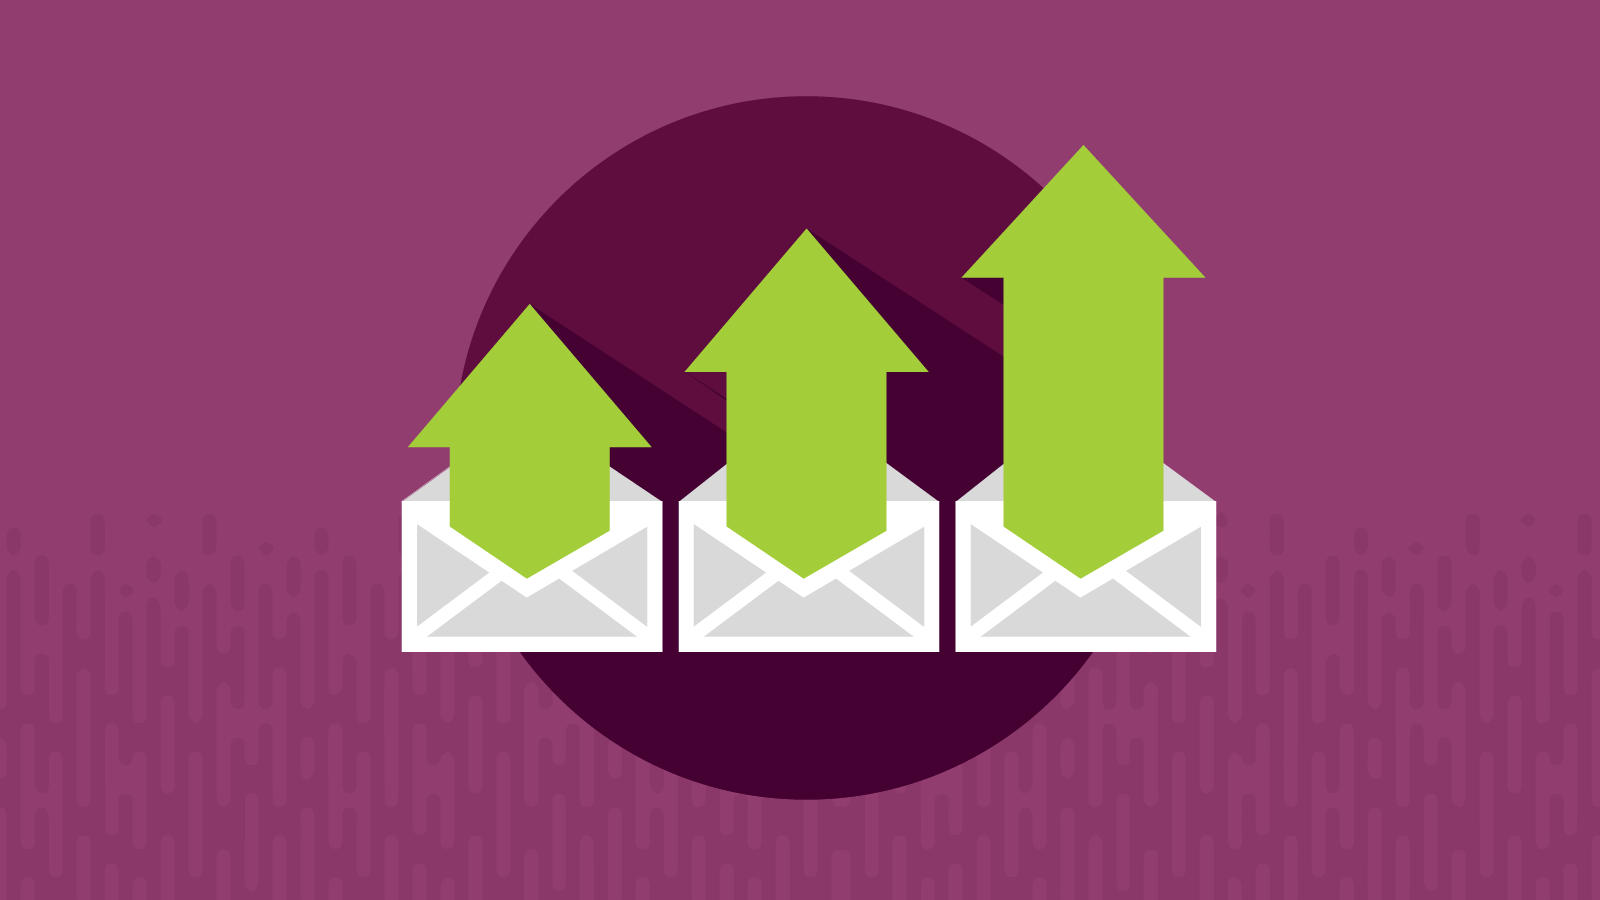 three up arrows from envelopes for increased email open rates